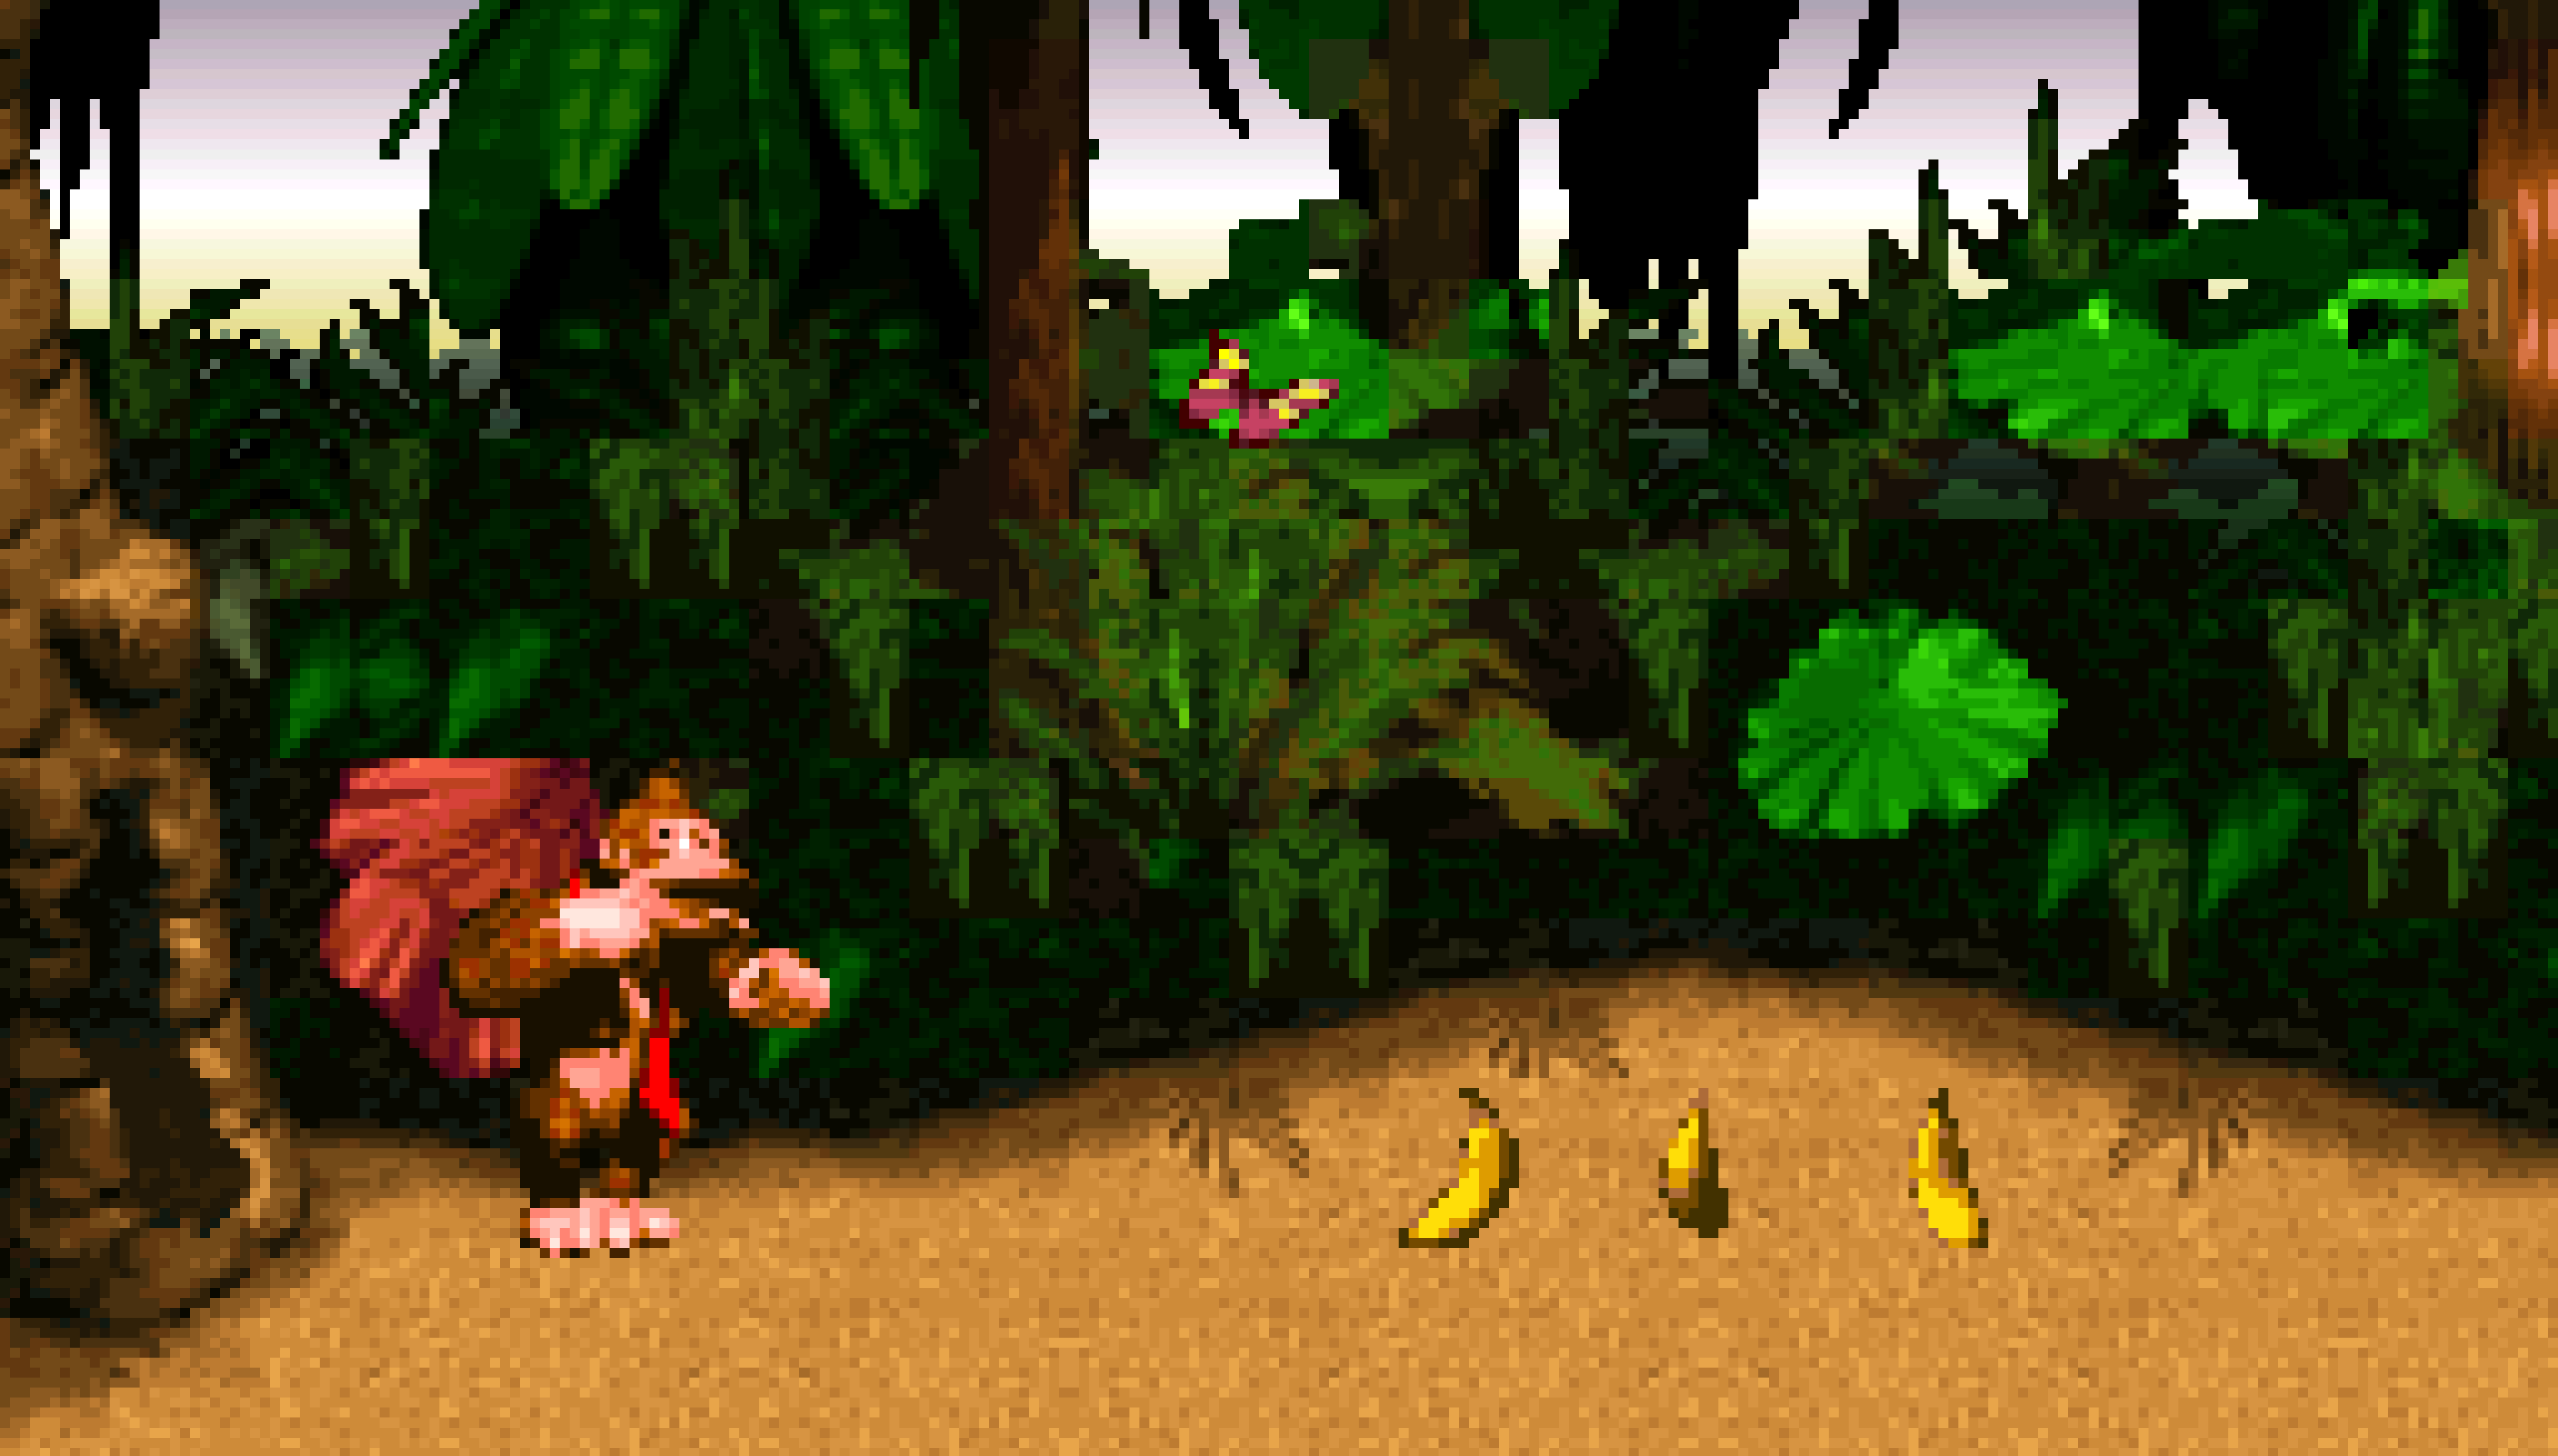 Jungle Hijinxs, the first level in Donkey Kong Country.